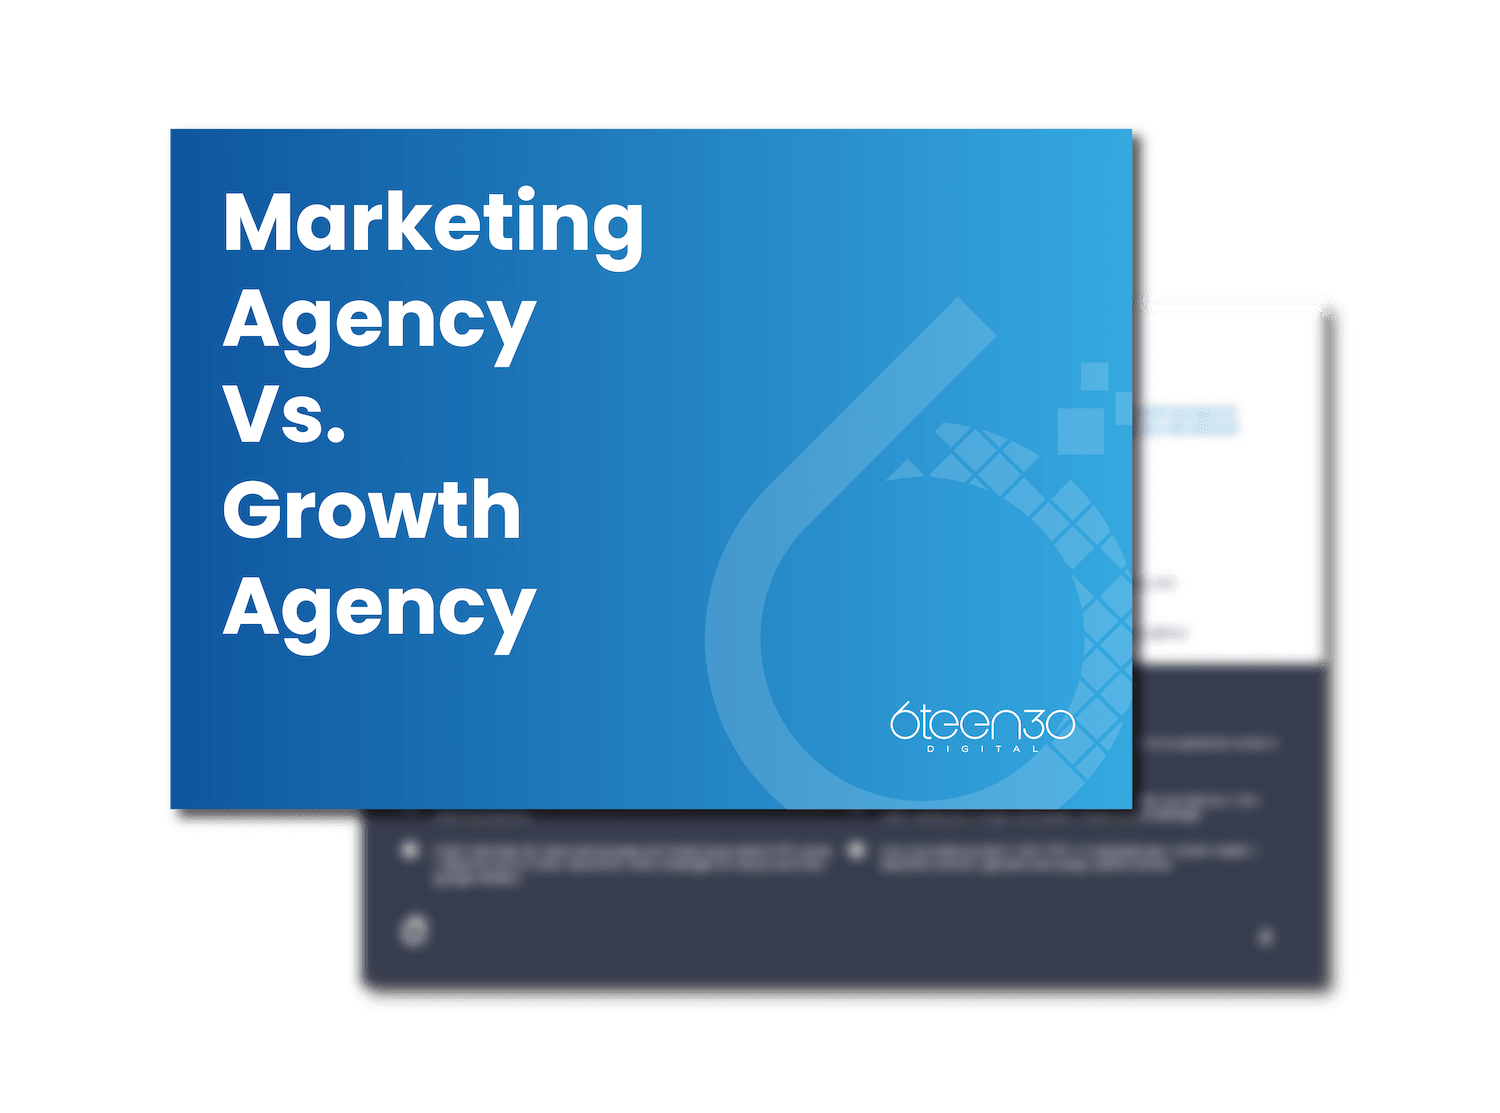 6teen30 - 3D Covers_Marketing Agency Vs Growth Agency